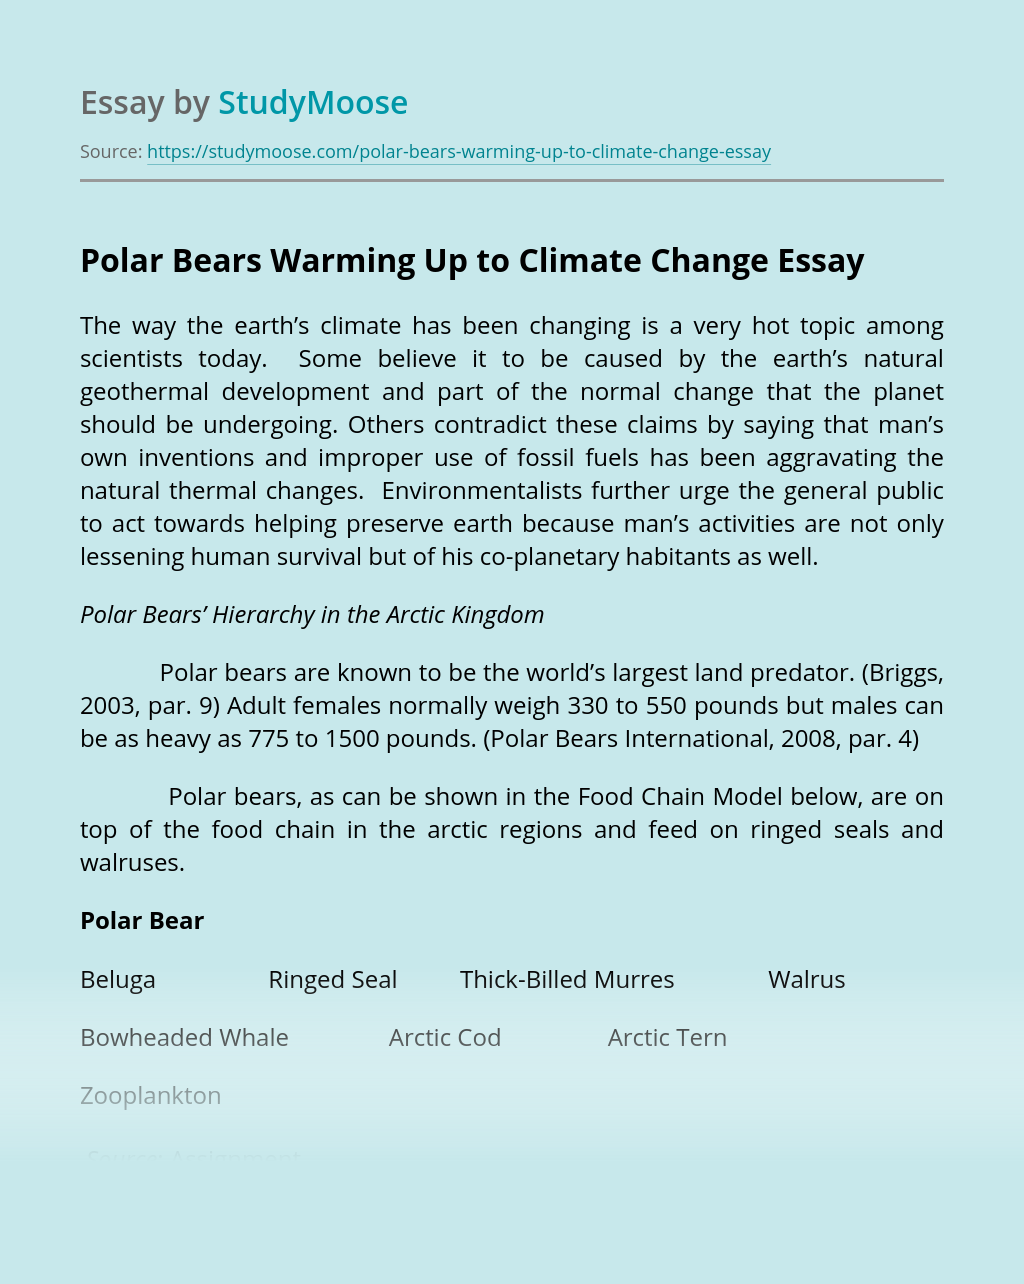 Polar Bears Warming Up to Climate Change